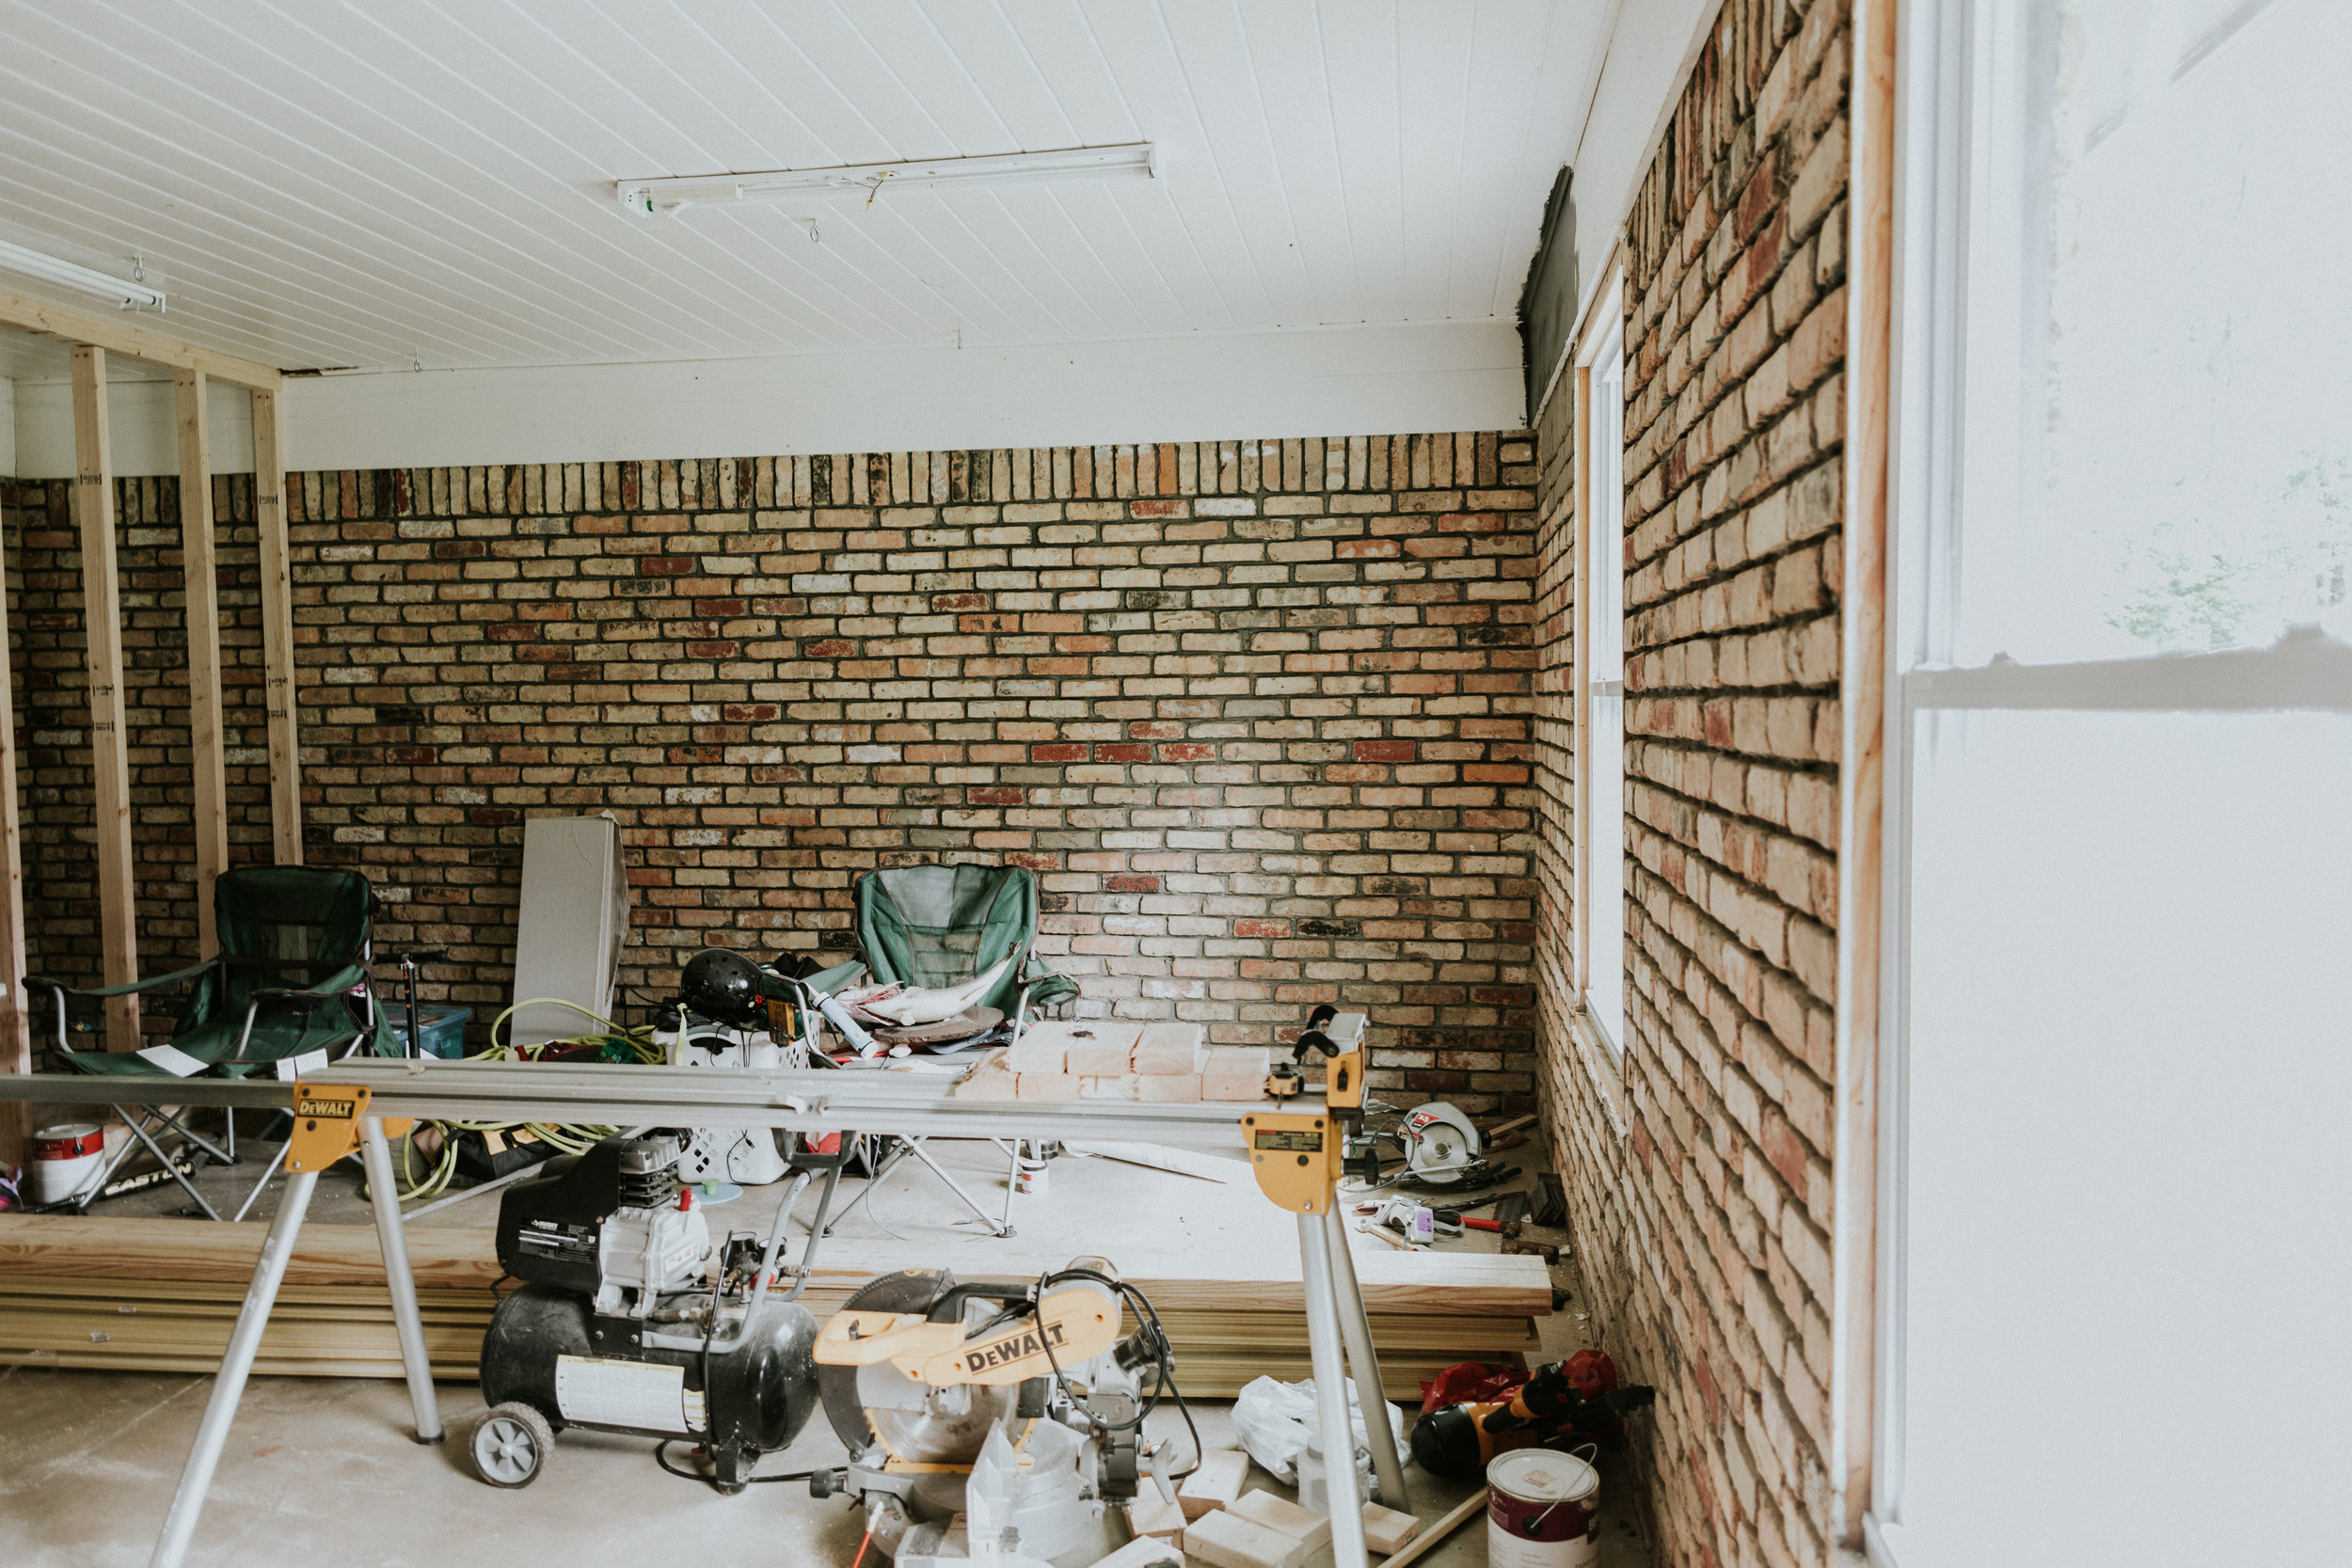 Turning a garage door into livable space